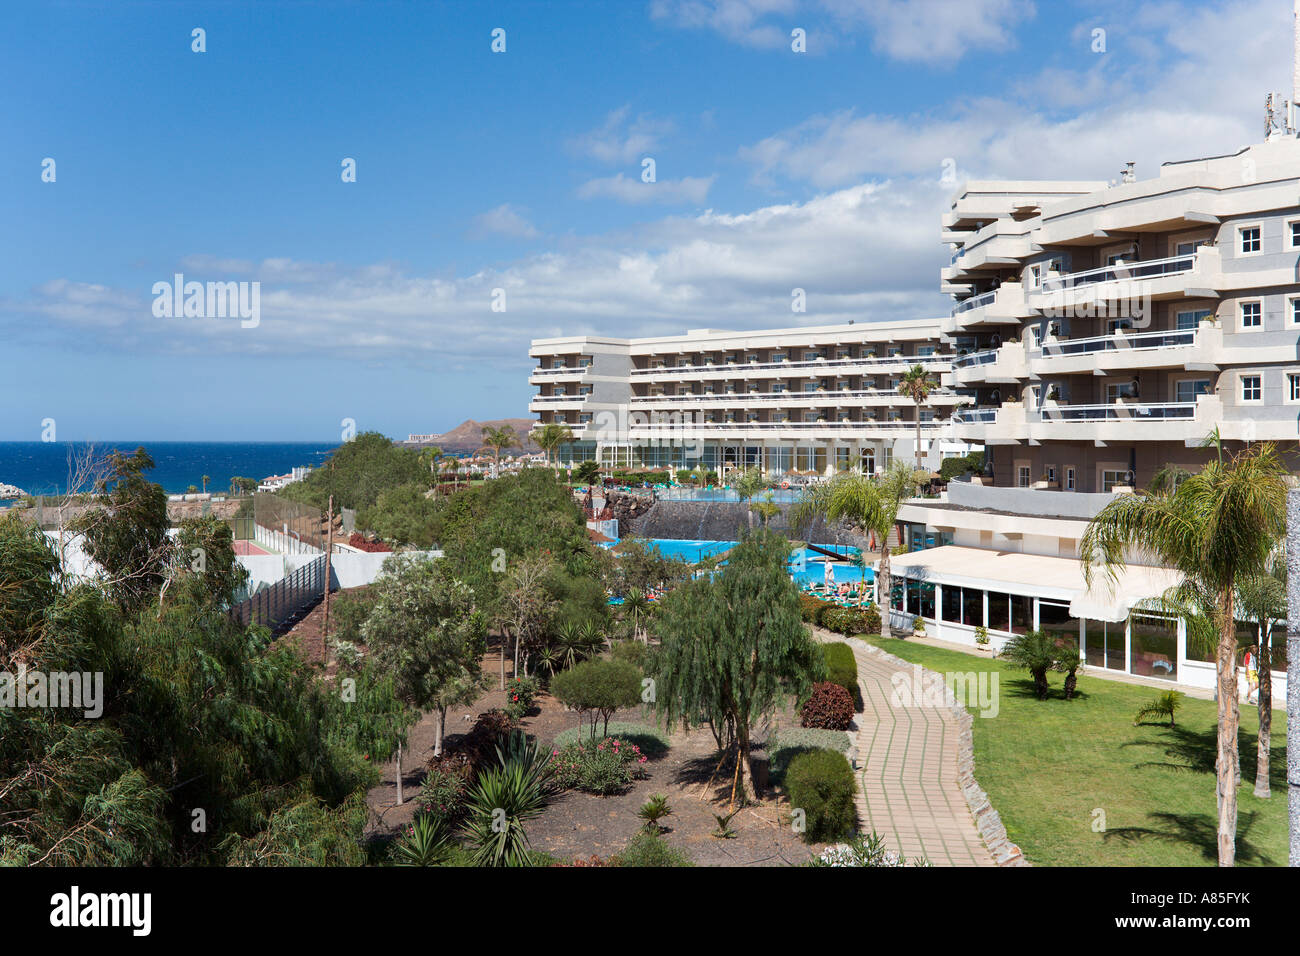 aguamarina golf hotel golf del sur tenerife canary islands